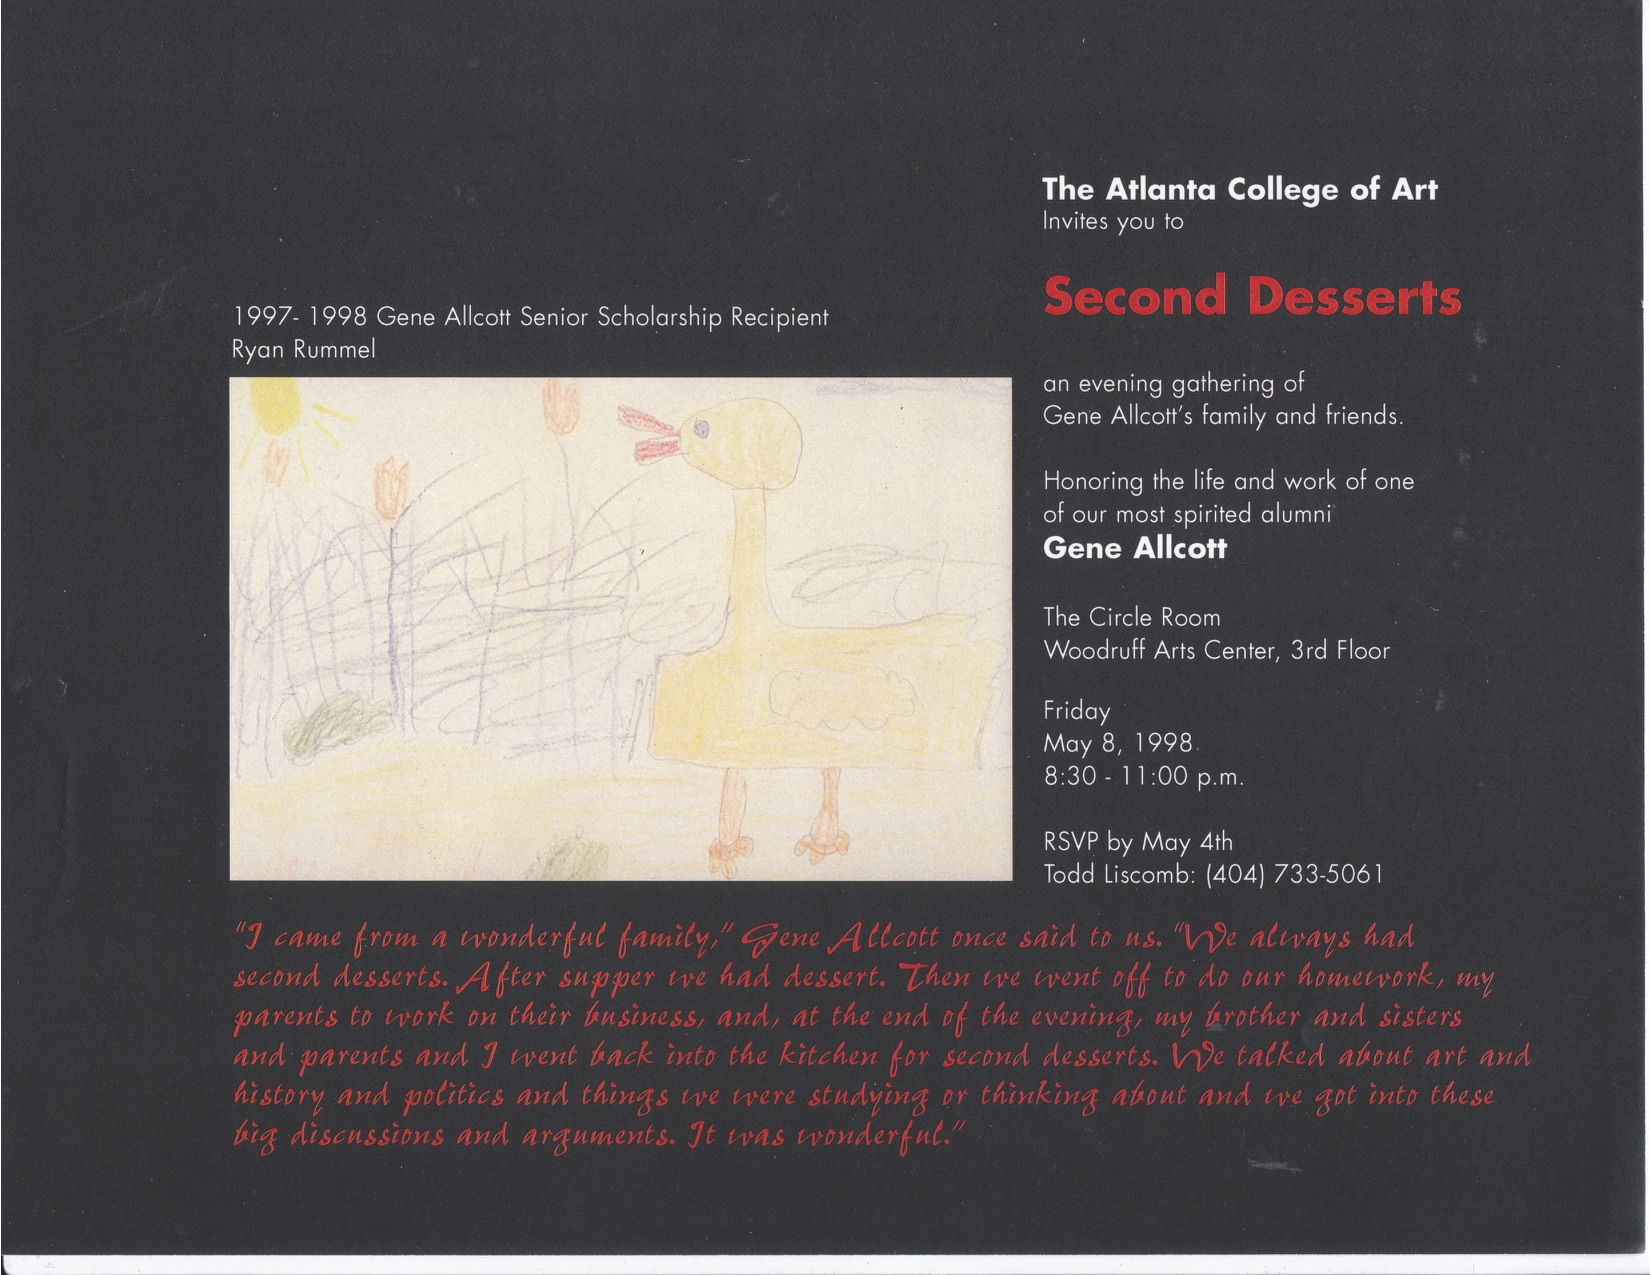 1998 Atlanta College of Art Second Desserts Event. Illustration by Allcott Scholar Ryan Rummel.